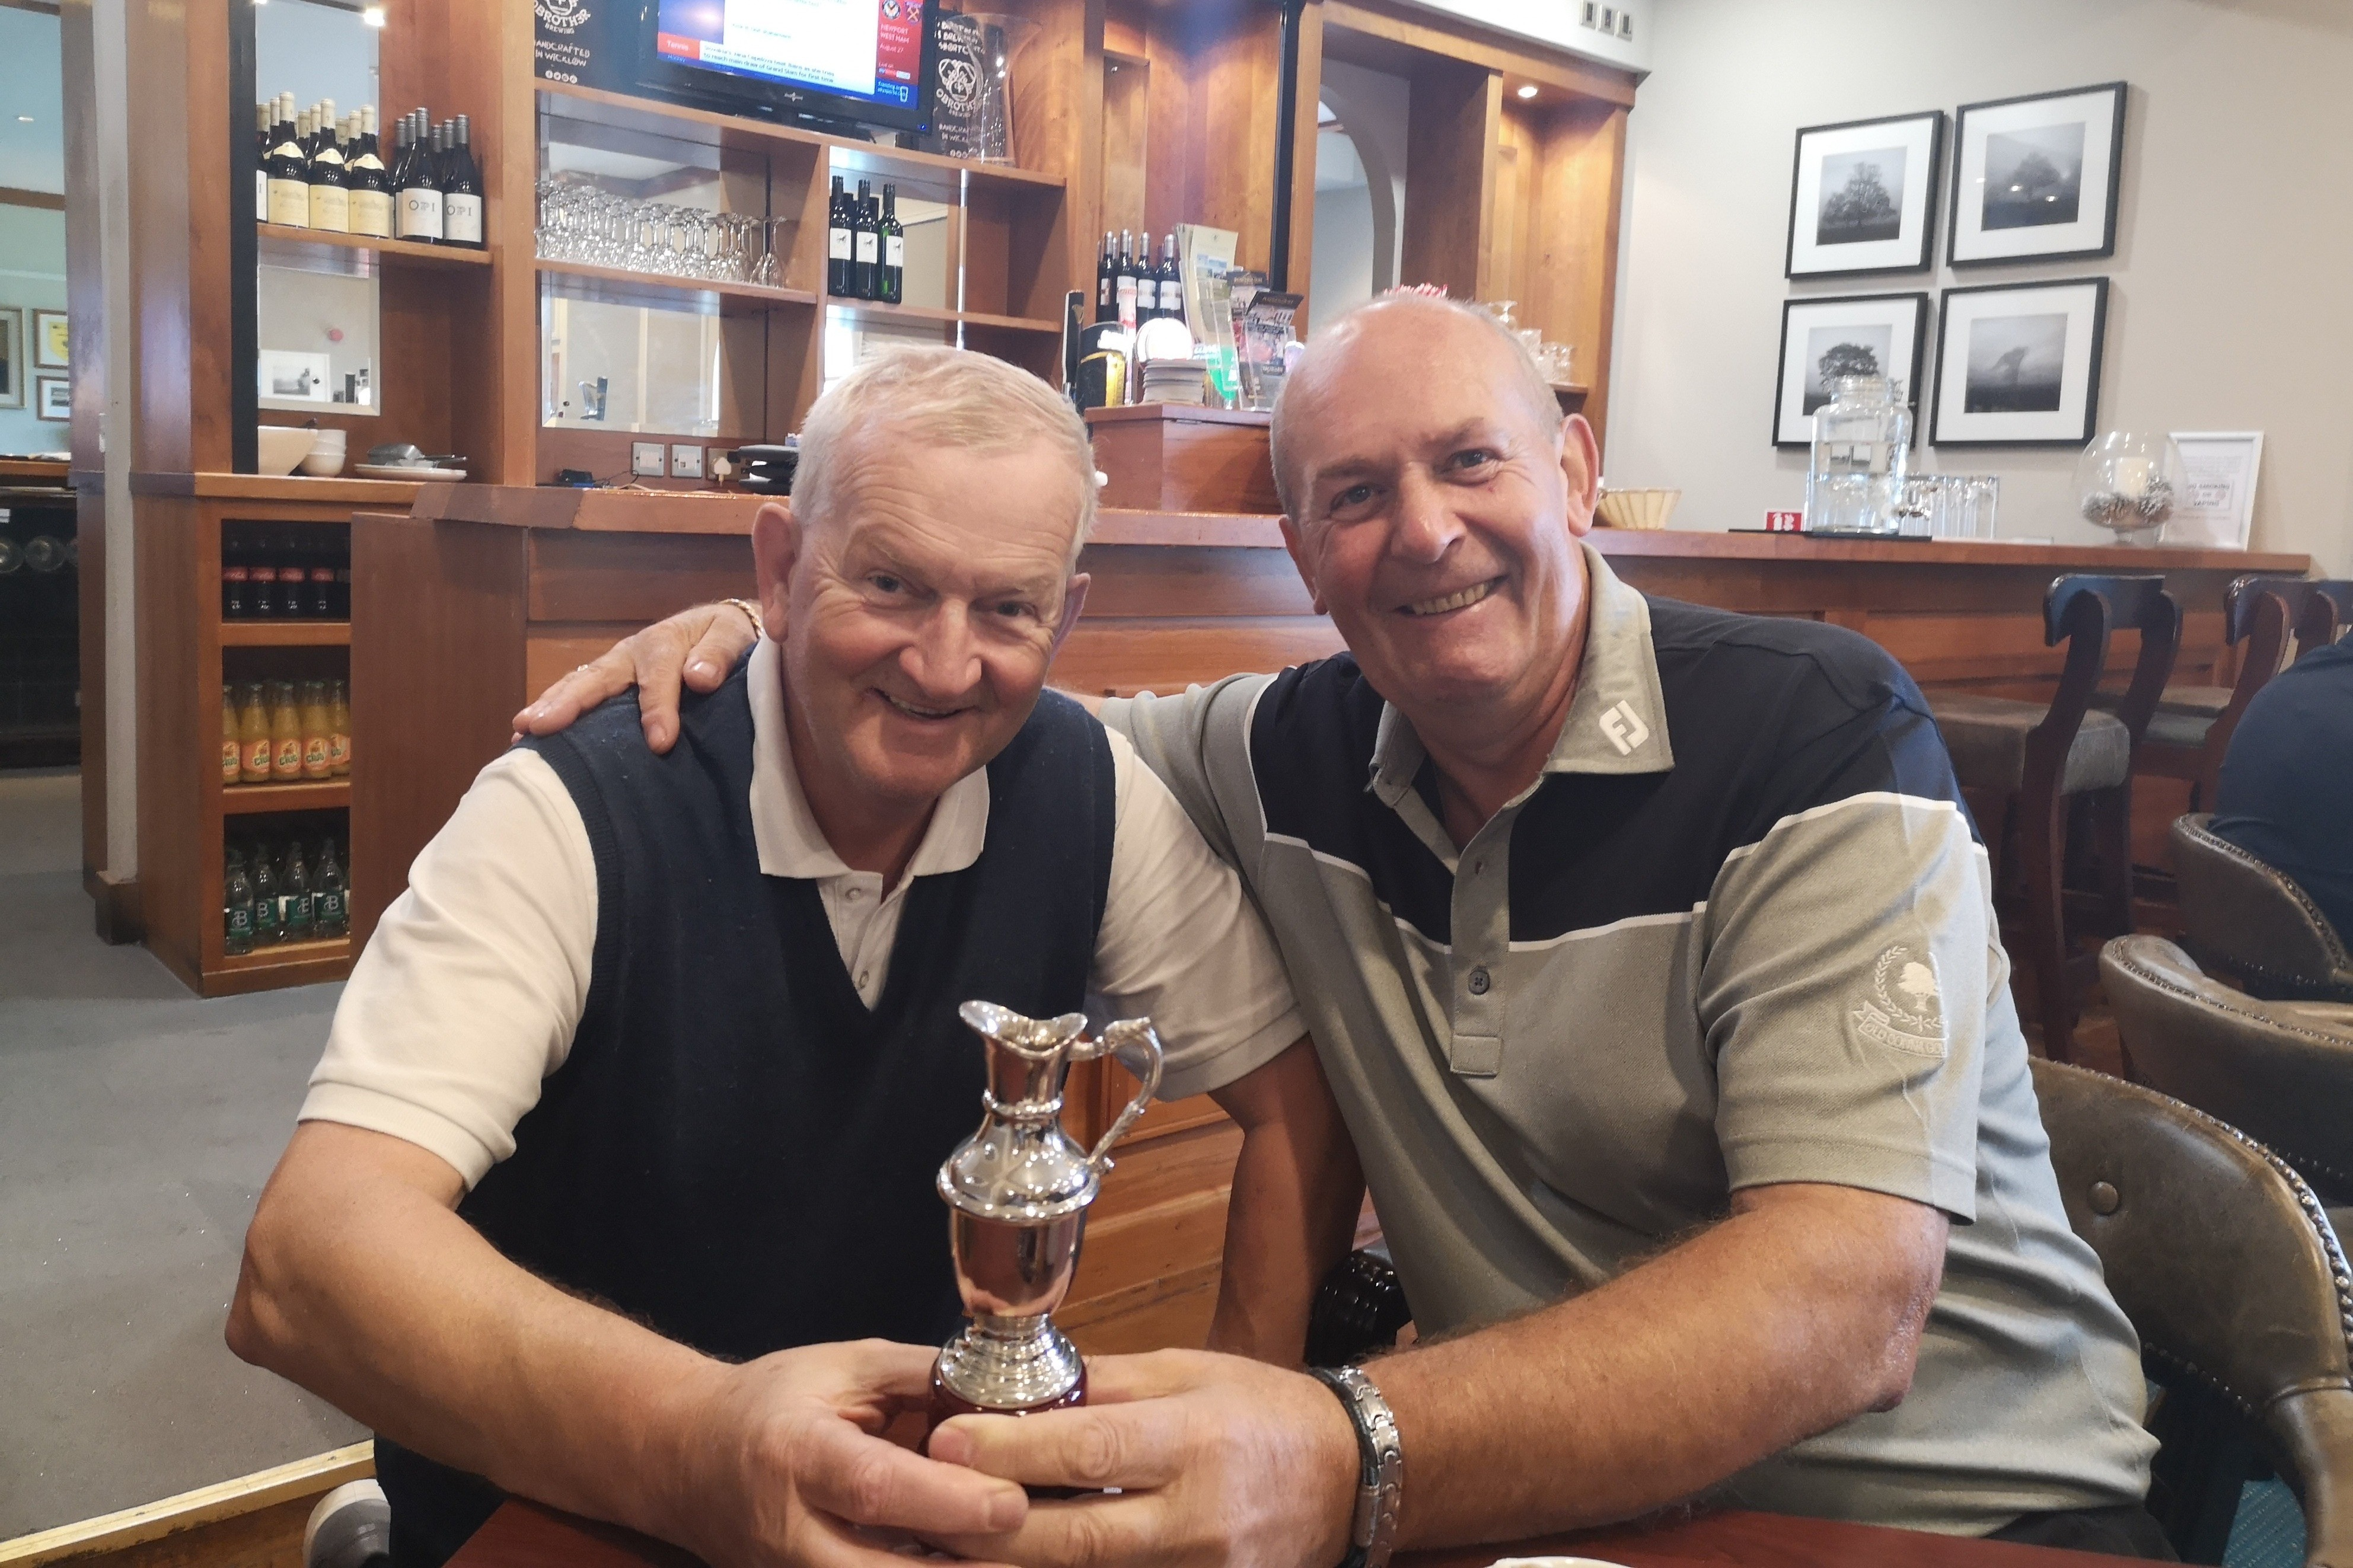 A very rare view - a trophy not only in Old Conna but won by Michael Neary!